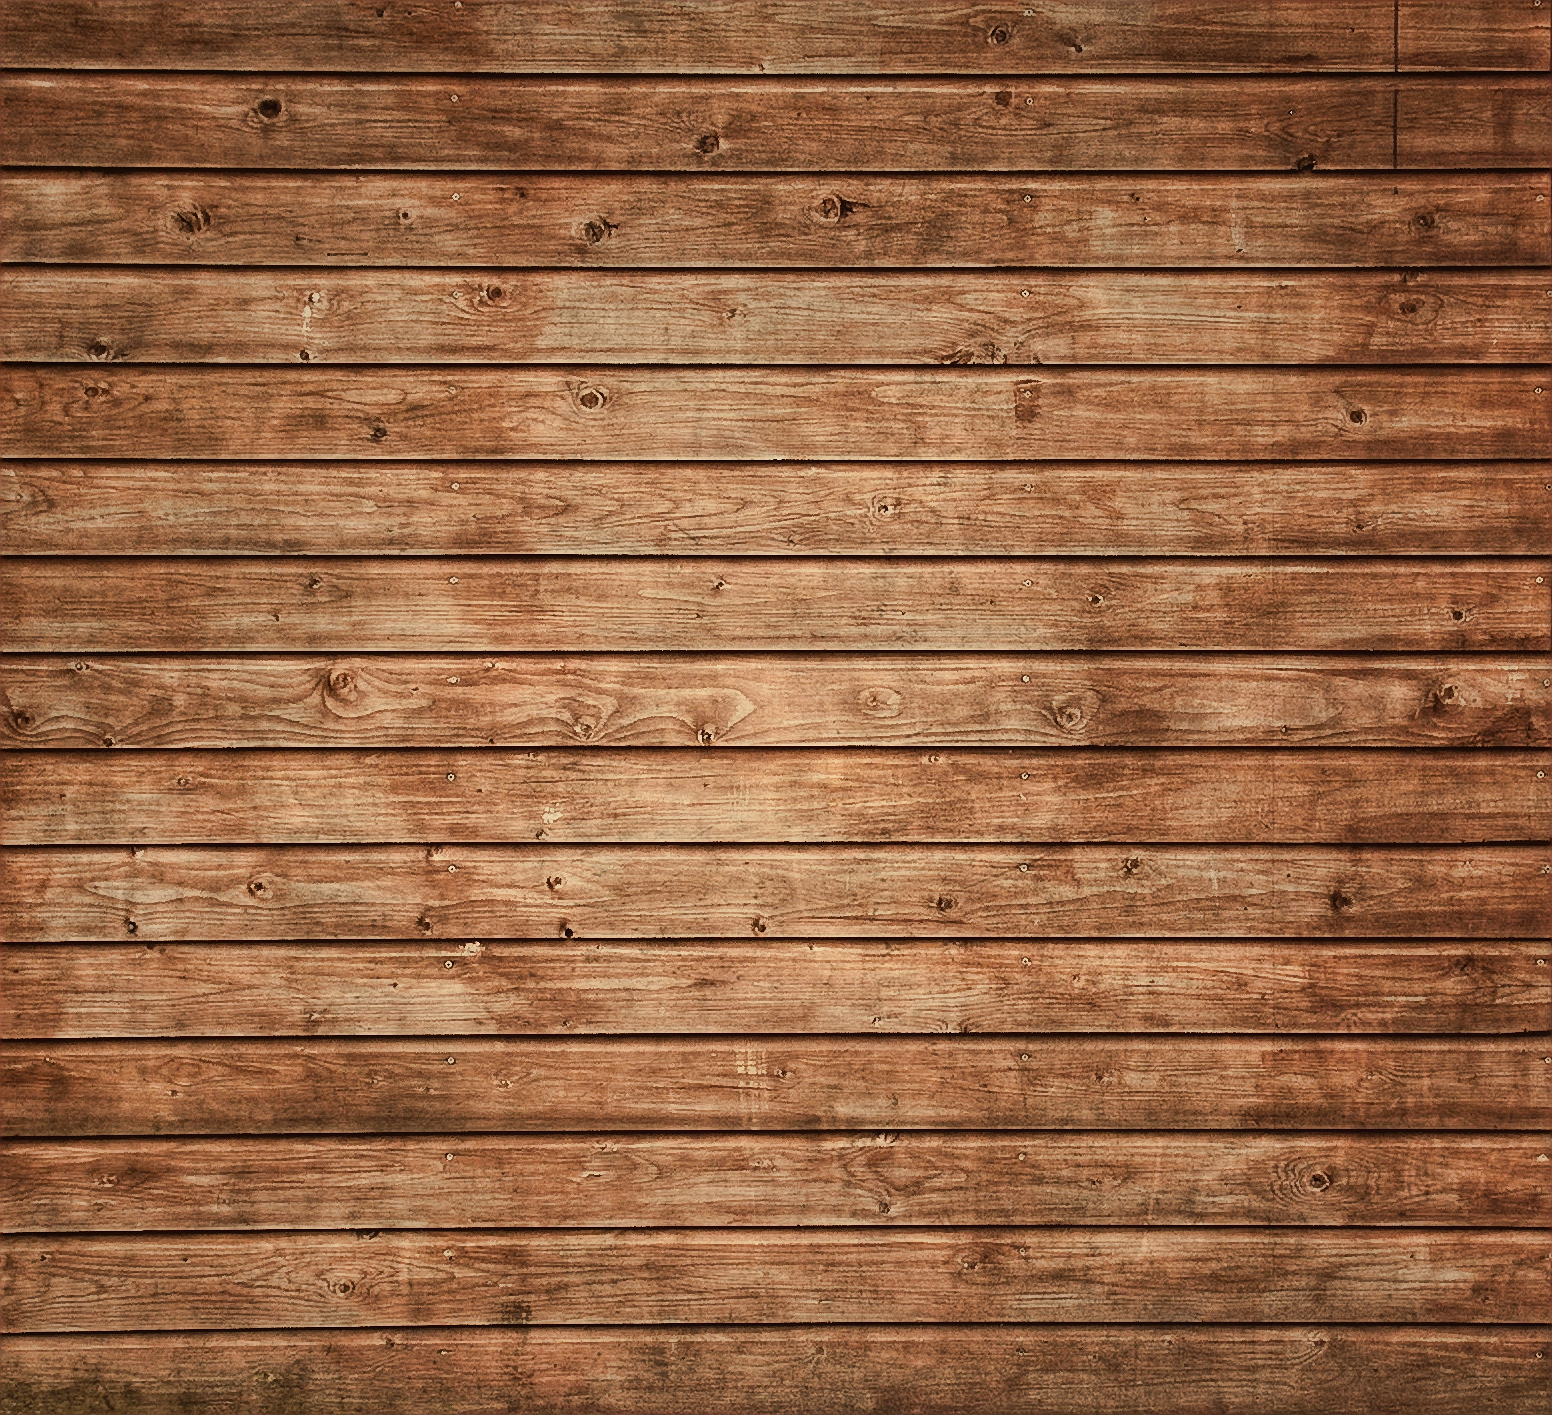 textures-wallpapers-free-wood-texture-grunge-wood